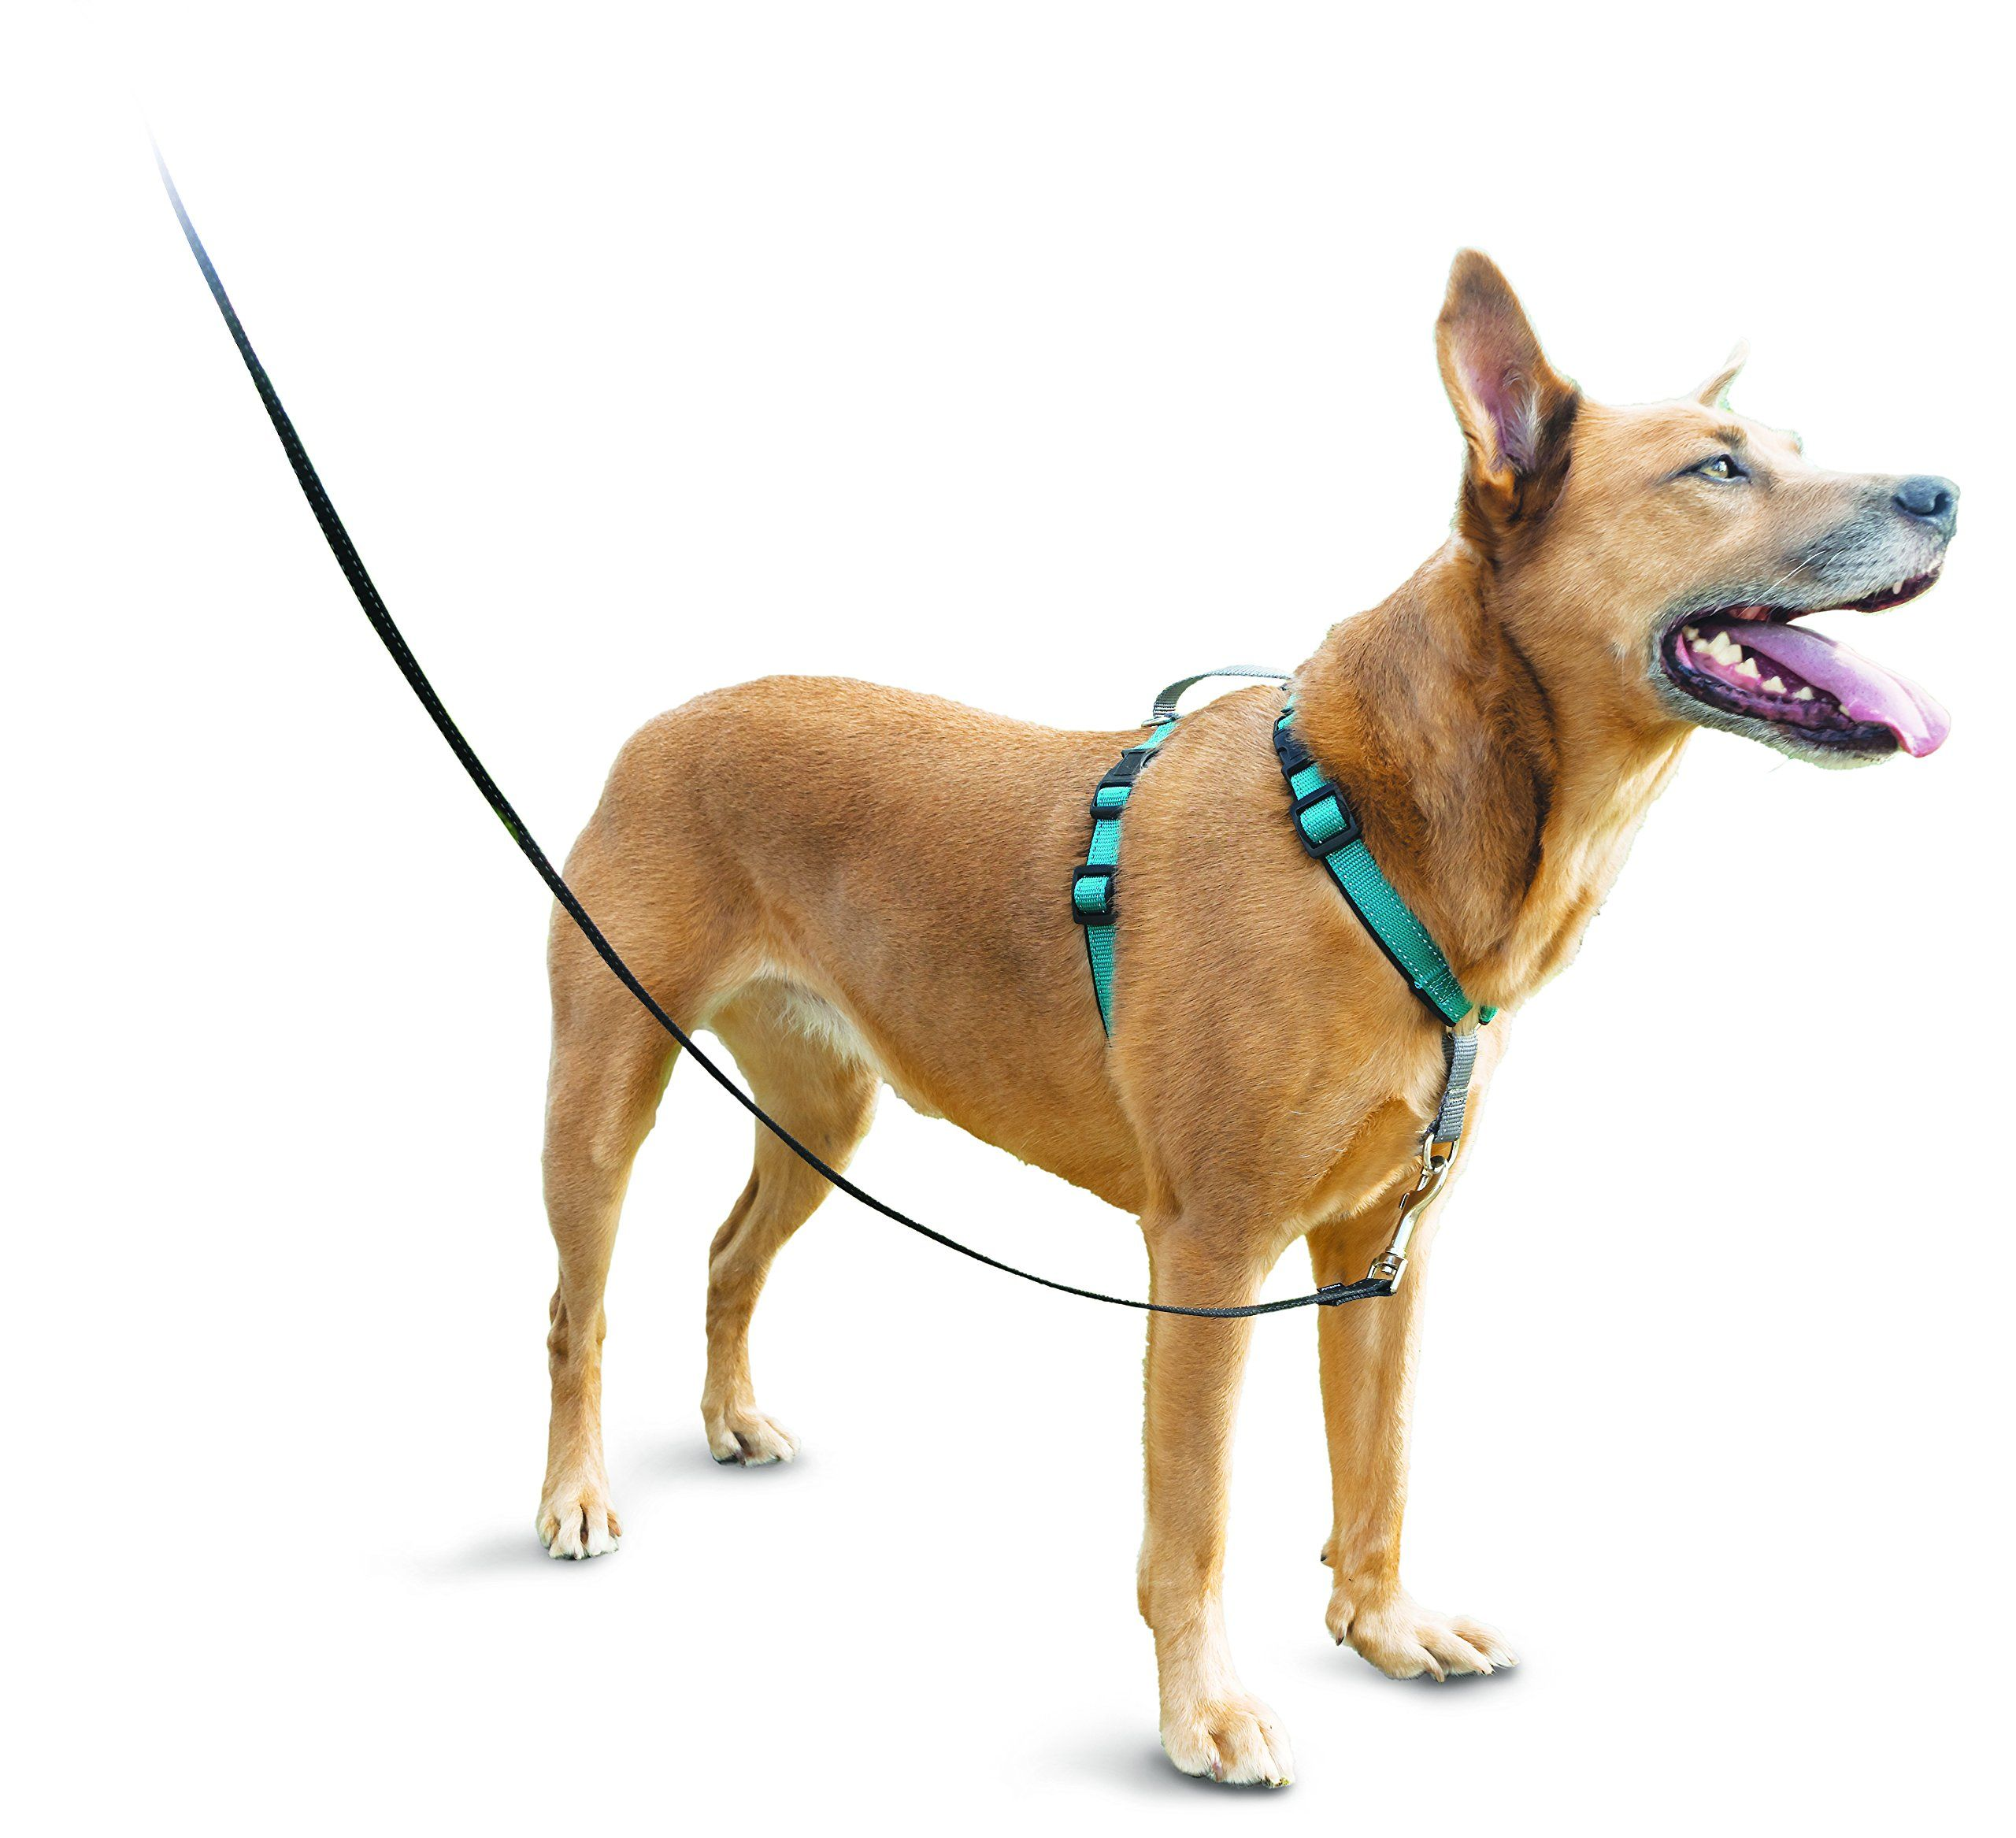 PetSafe 3in1 Harness from the Makers of the Easy Walk